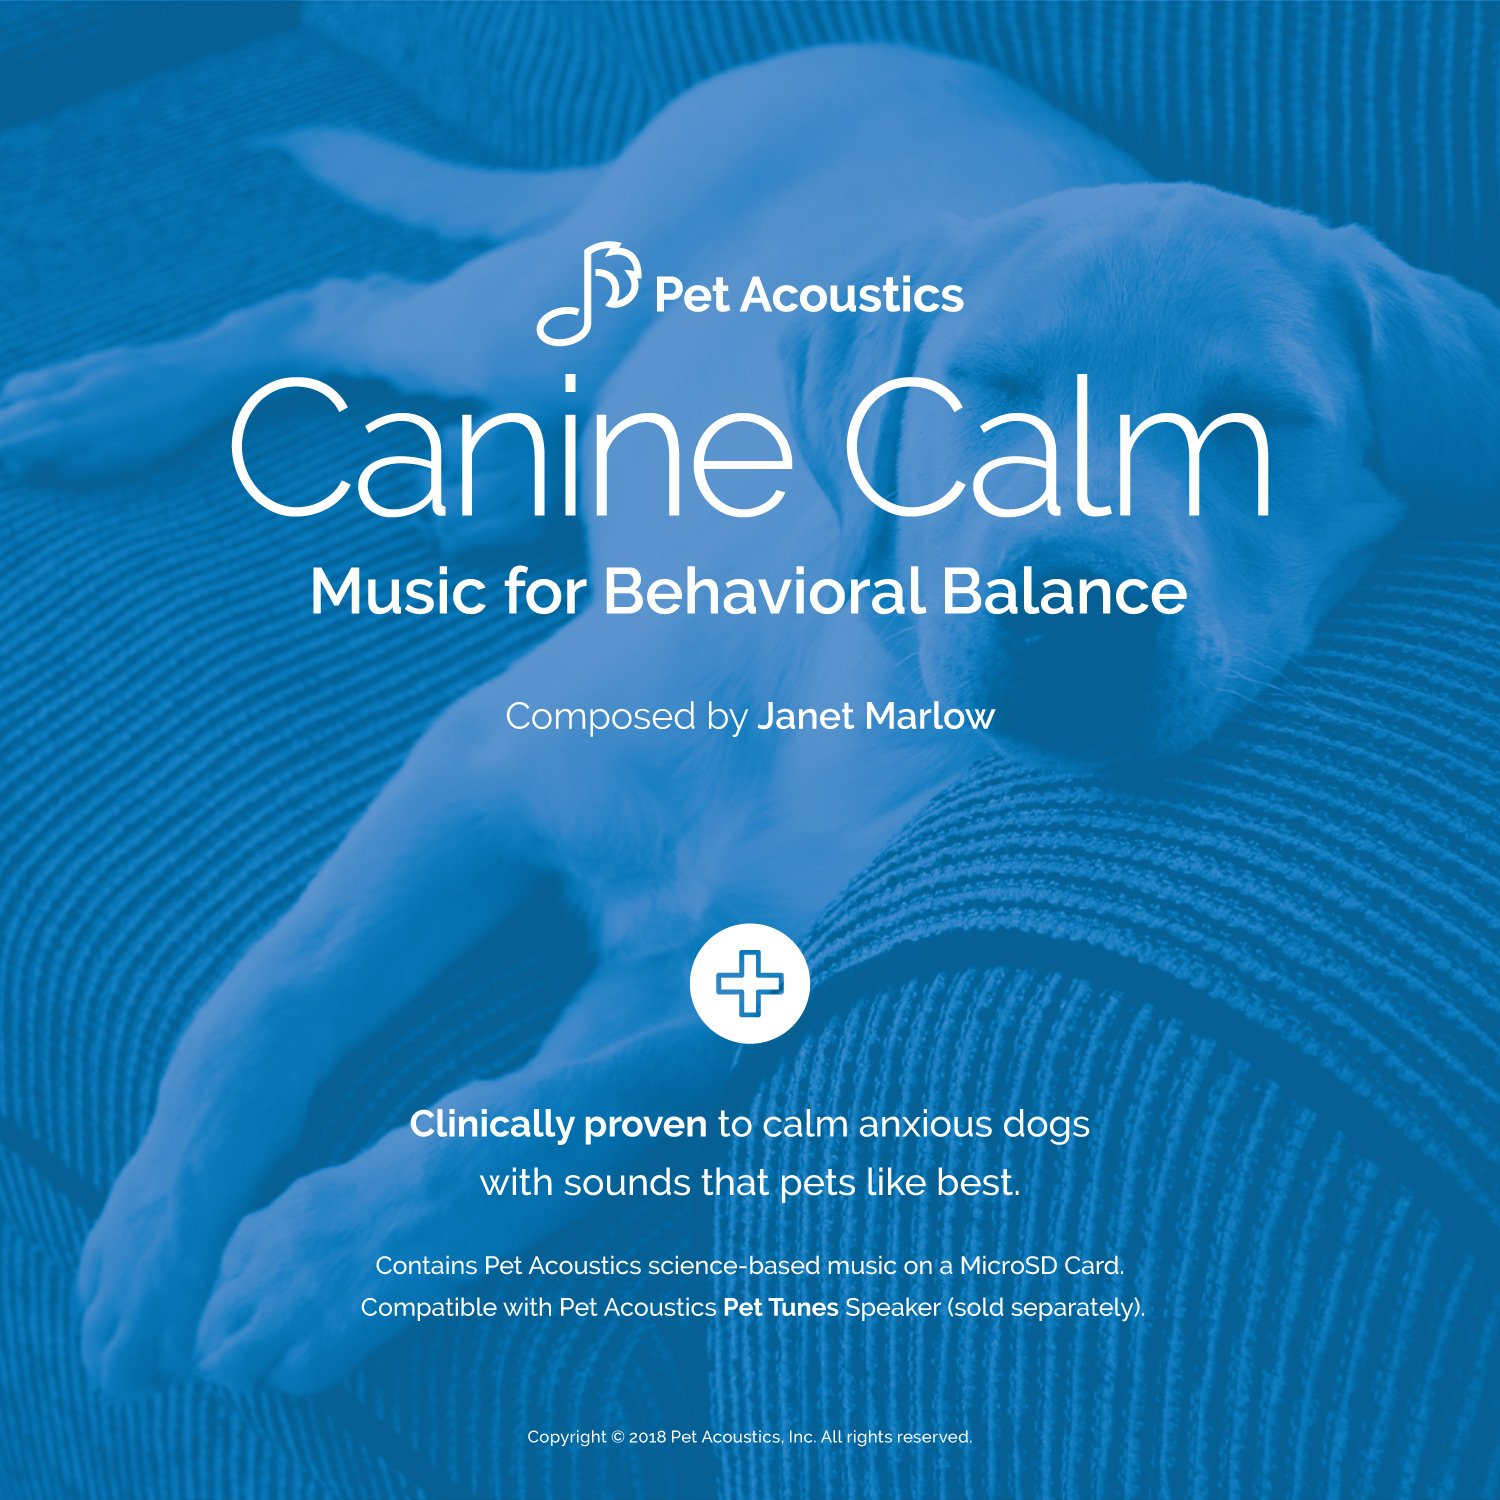 Pet Acoustics Canine Calm Music